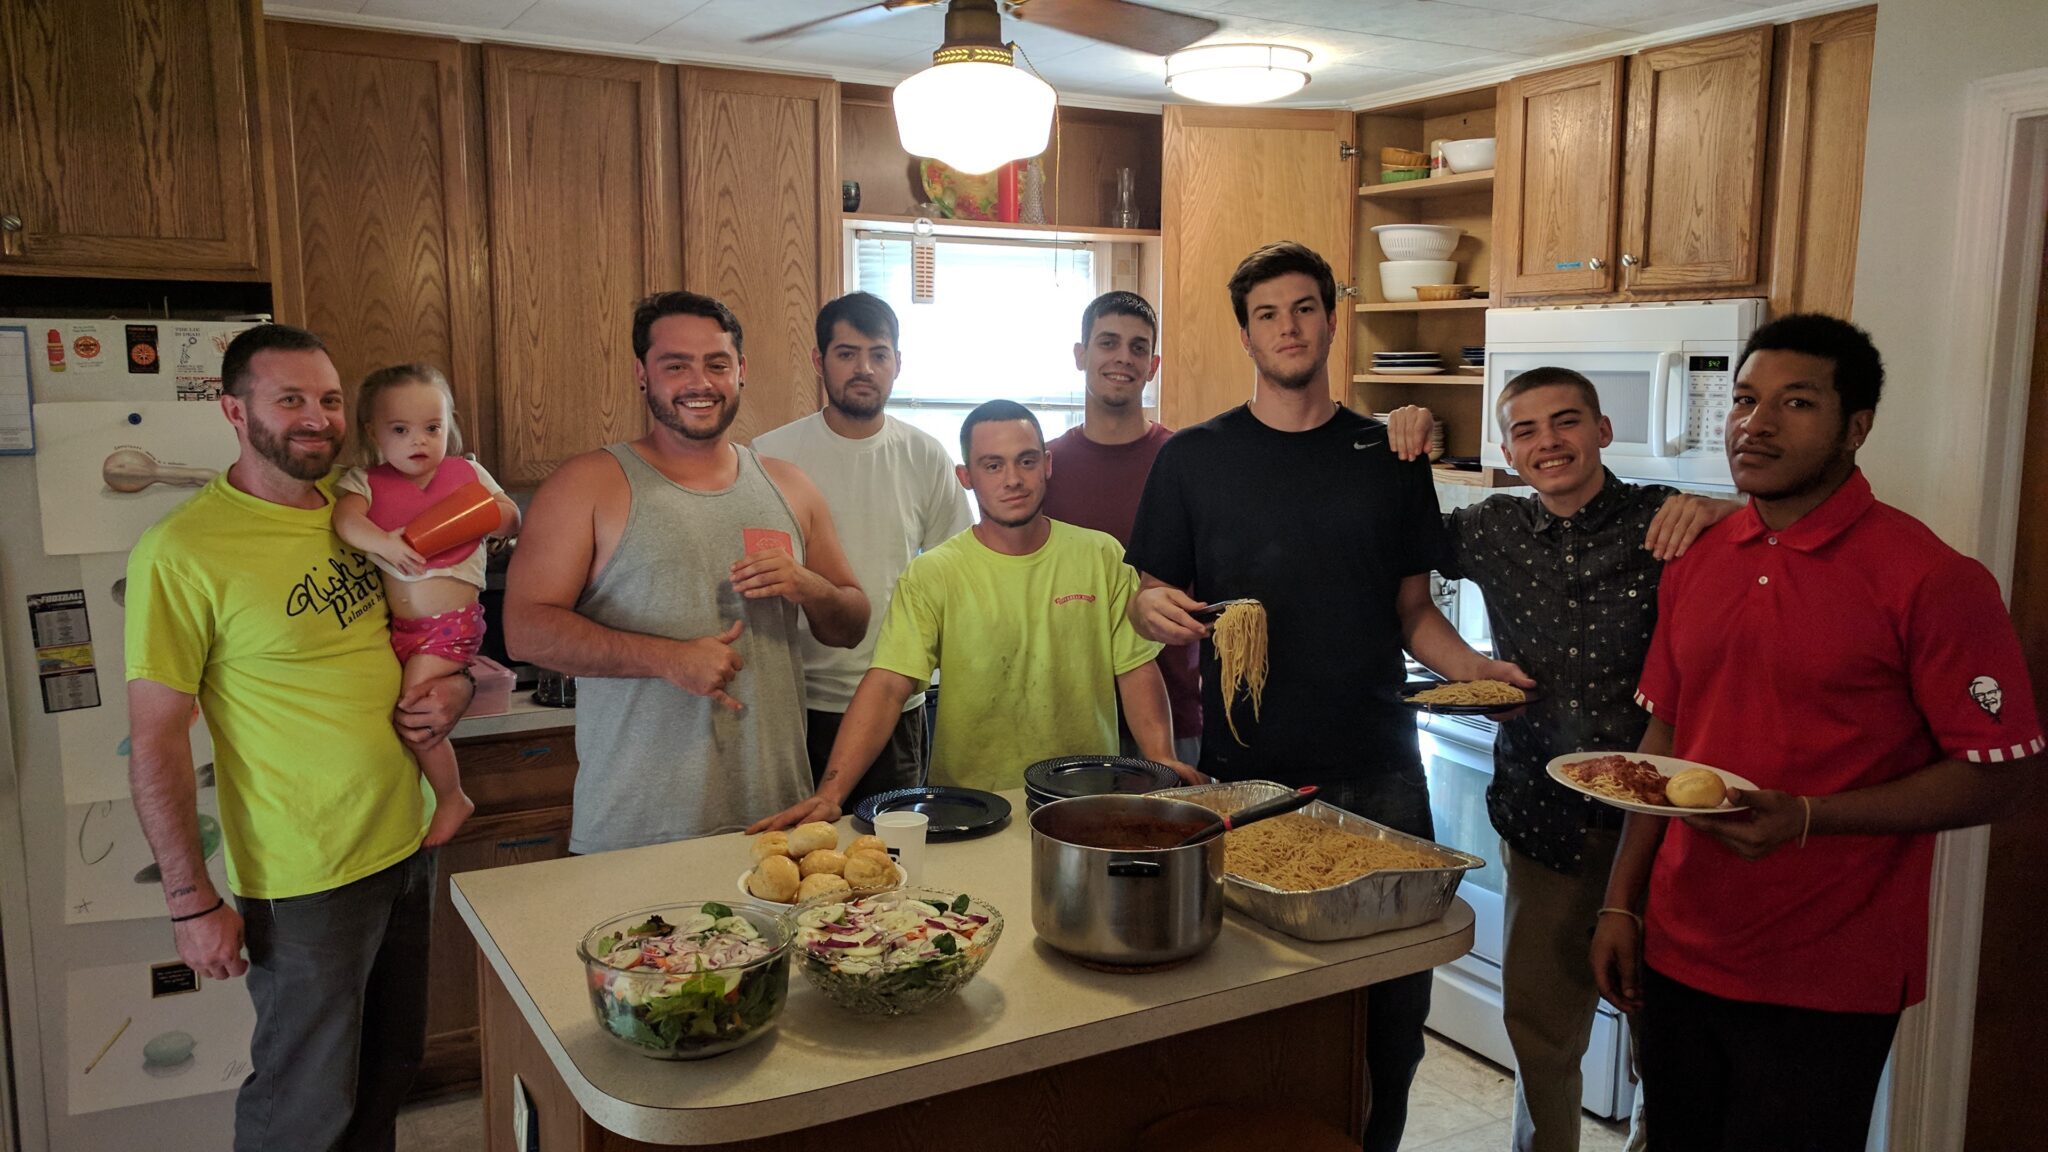 Group of eight men, one holding a toddler, smile and pose for a group photo in a kitchen with wood oak cabinets. They stand around a kitchen island with family size bowls of salad, pasta, sauce, and rolls